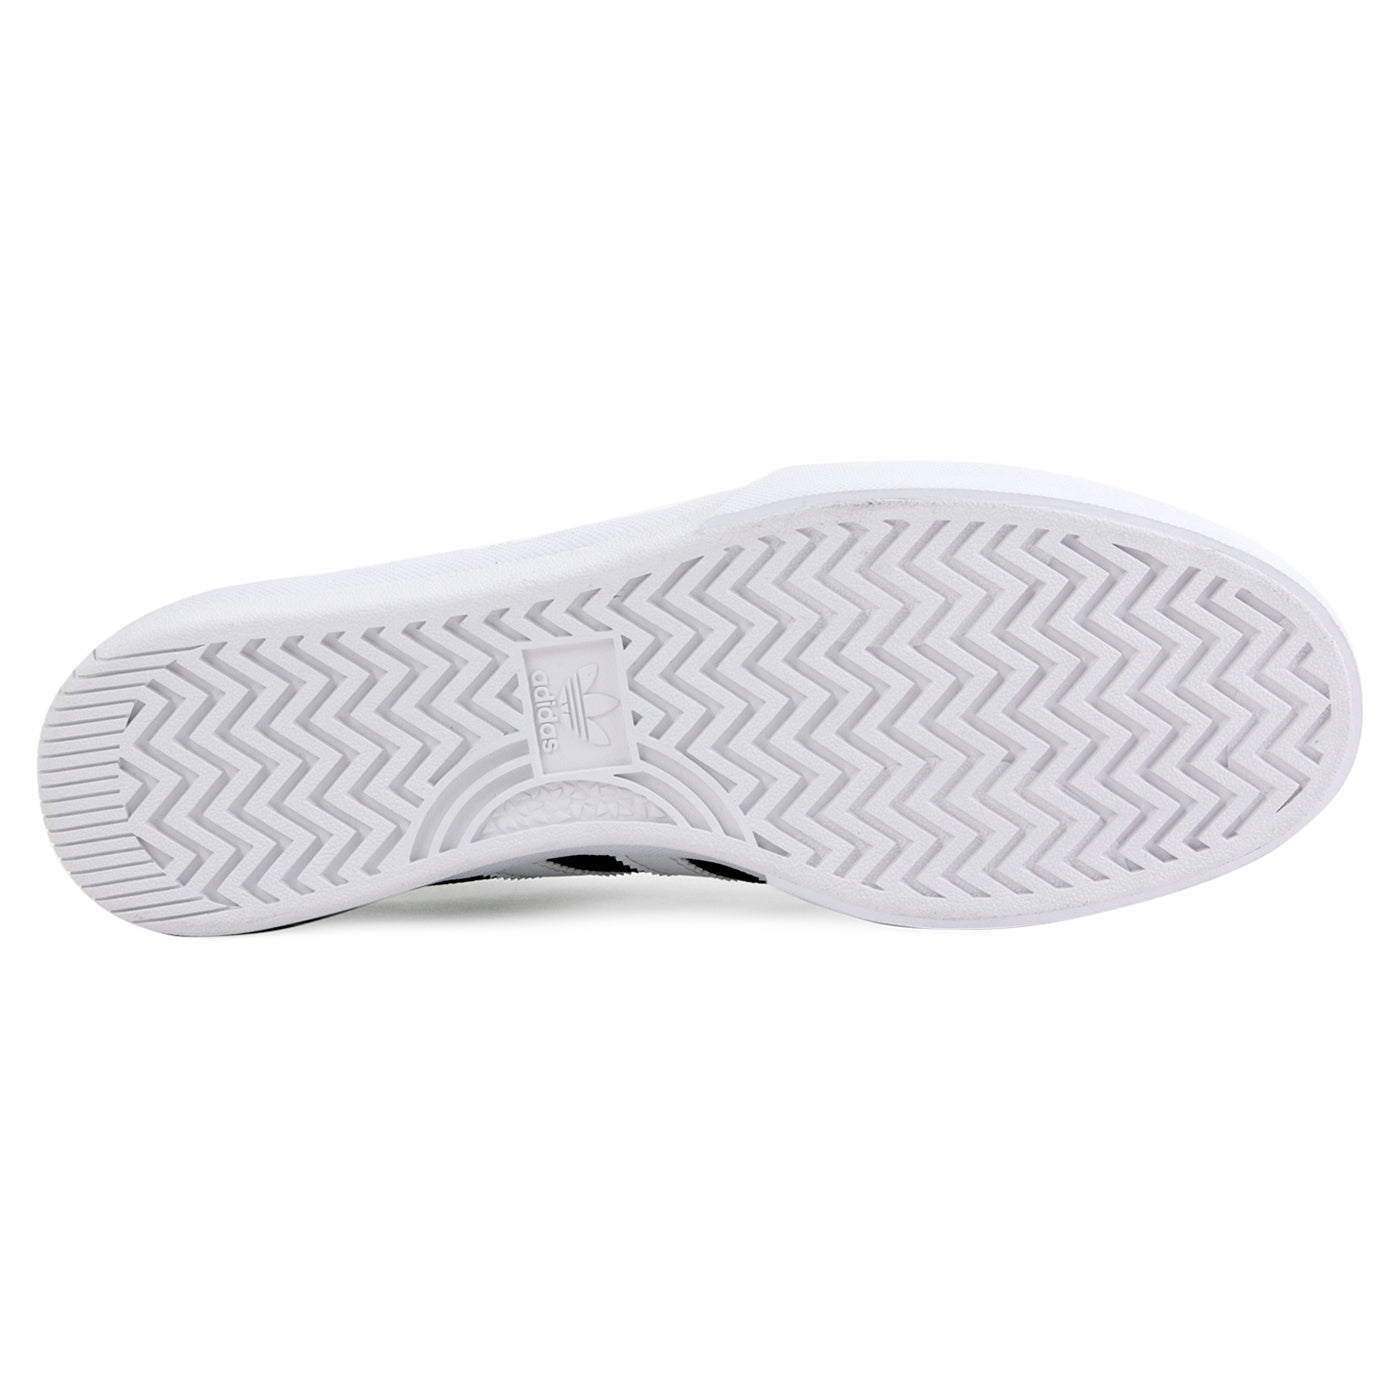 10f71d64208 Lucas Premiere ADV Shoes in Core Black   White   White by Adidas ...